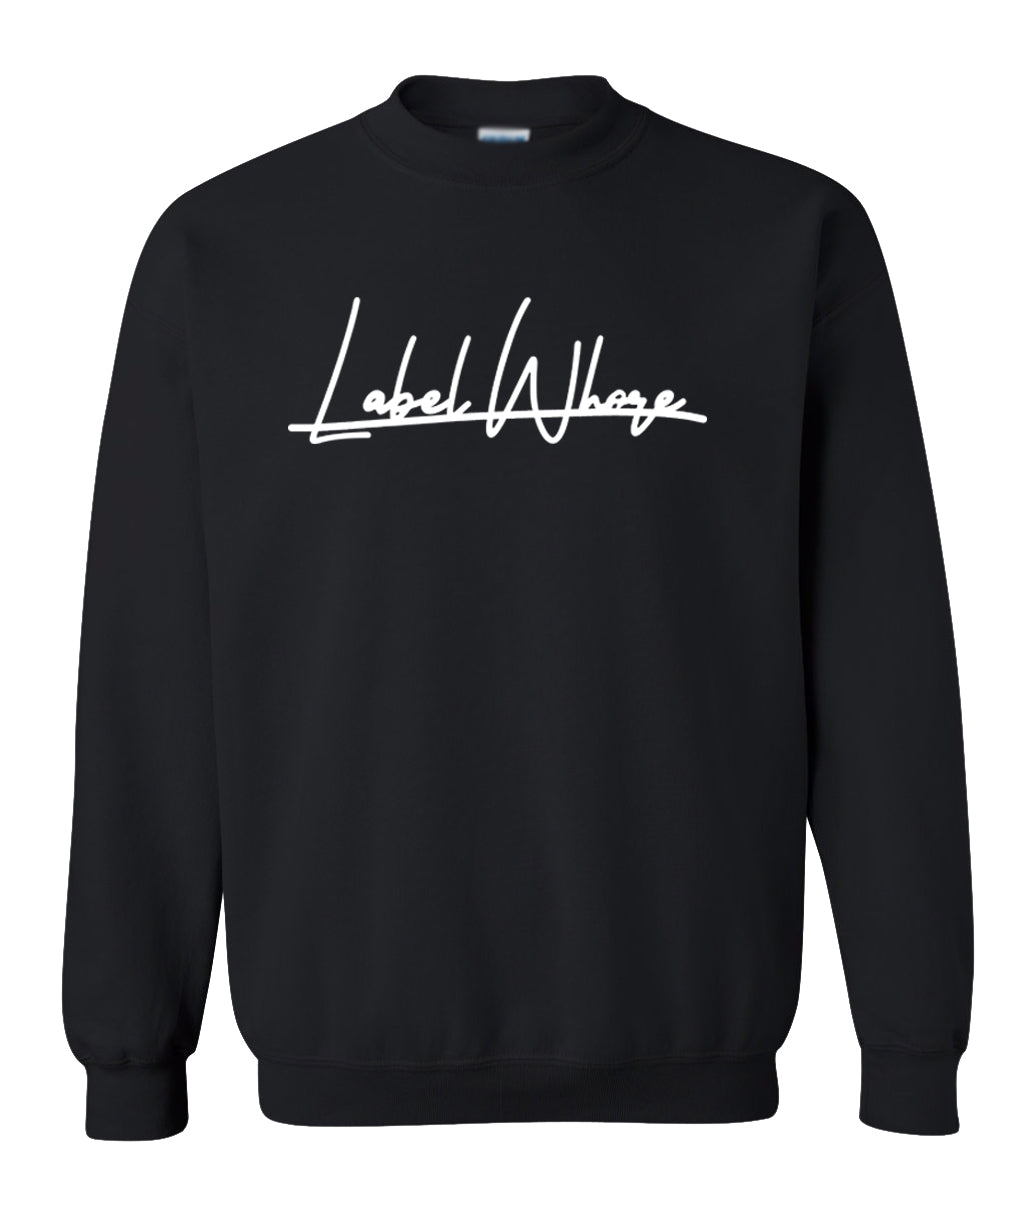 black label whore sweatshirt